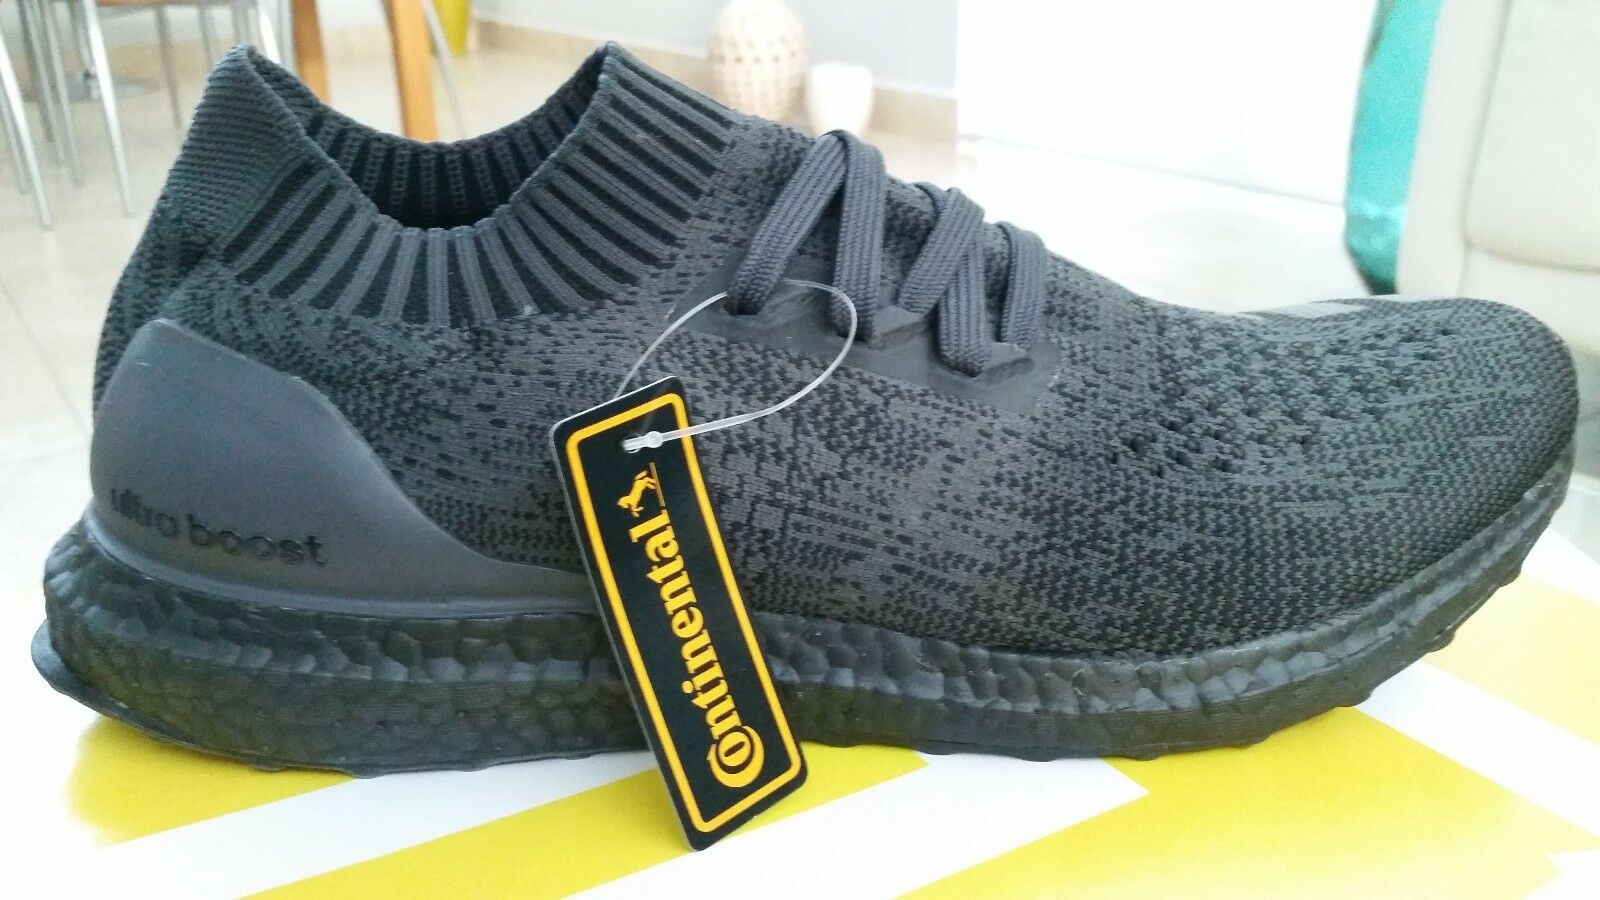 Adidas Ultra Boost Boost Boost Uncaged Triple Black sz 11.5 BA7996 limited rare 061c08